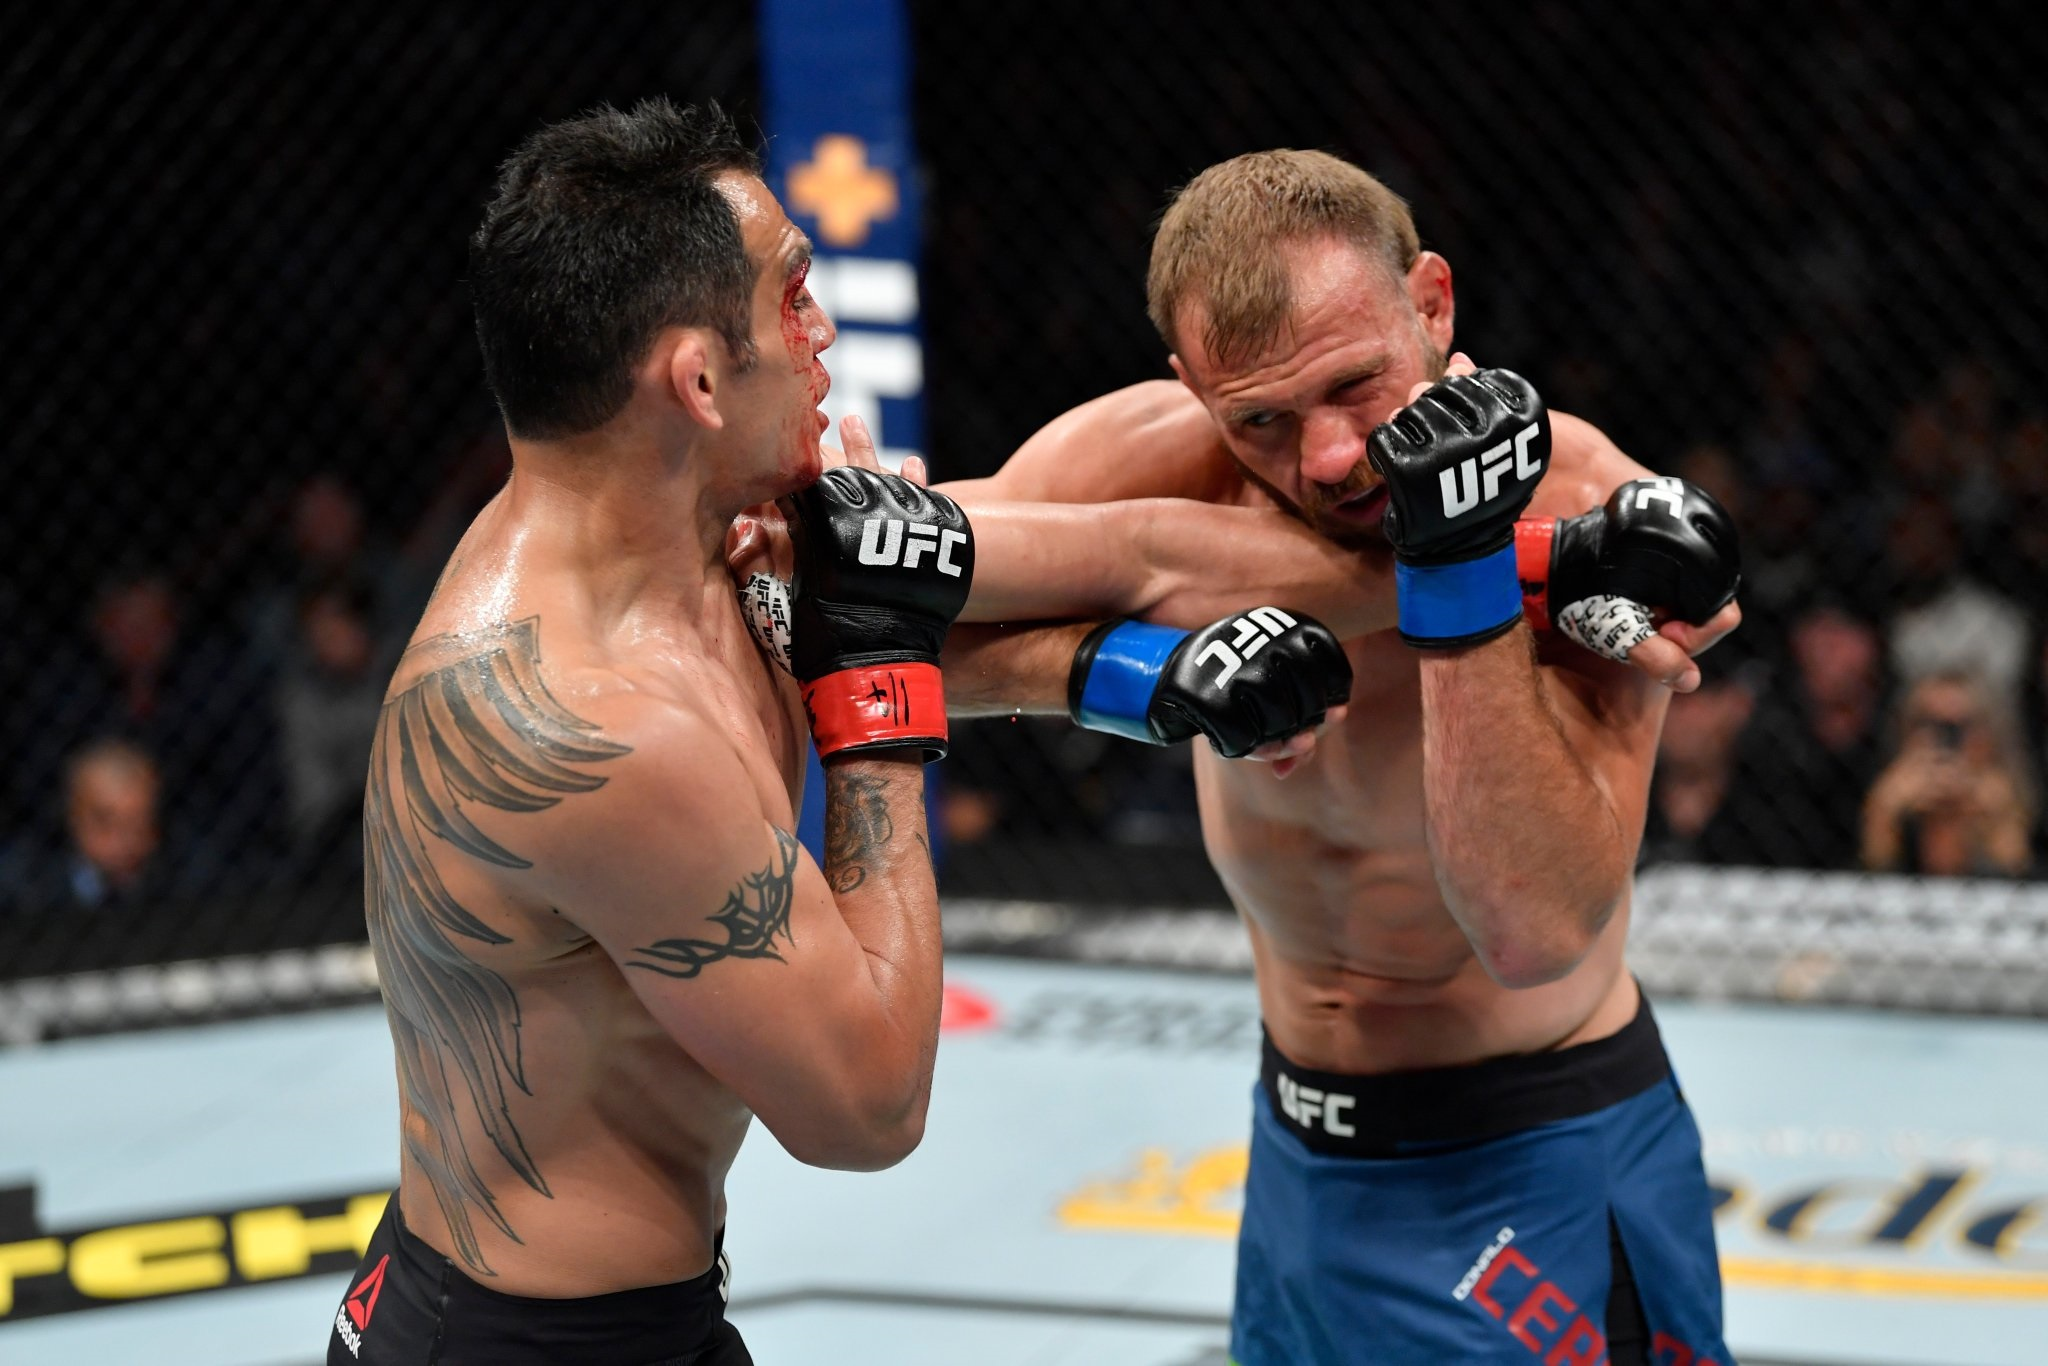 UFC 238 Results - Cerrone's Swollen Eye Causes the Fight to be Stopped, Ferguson Wins via TKO -